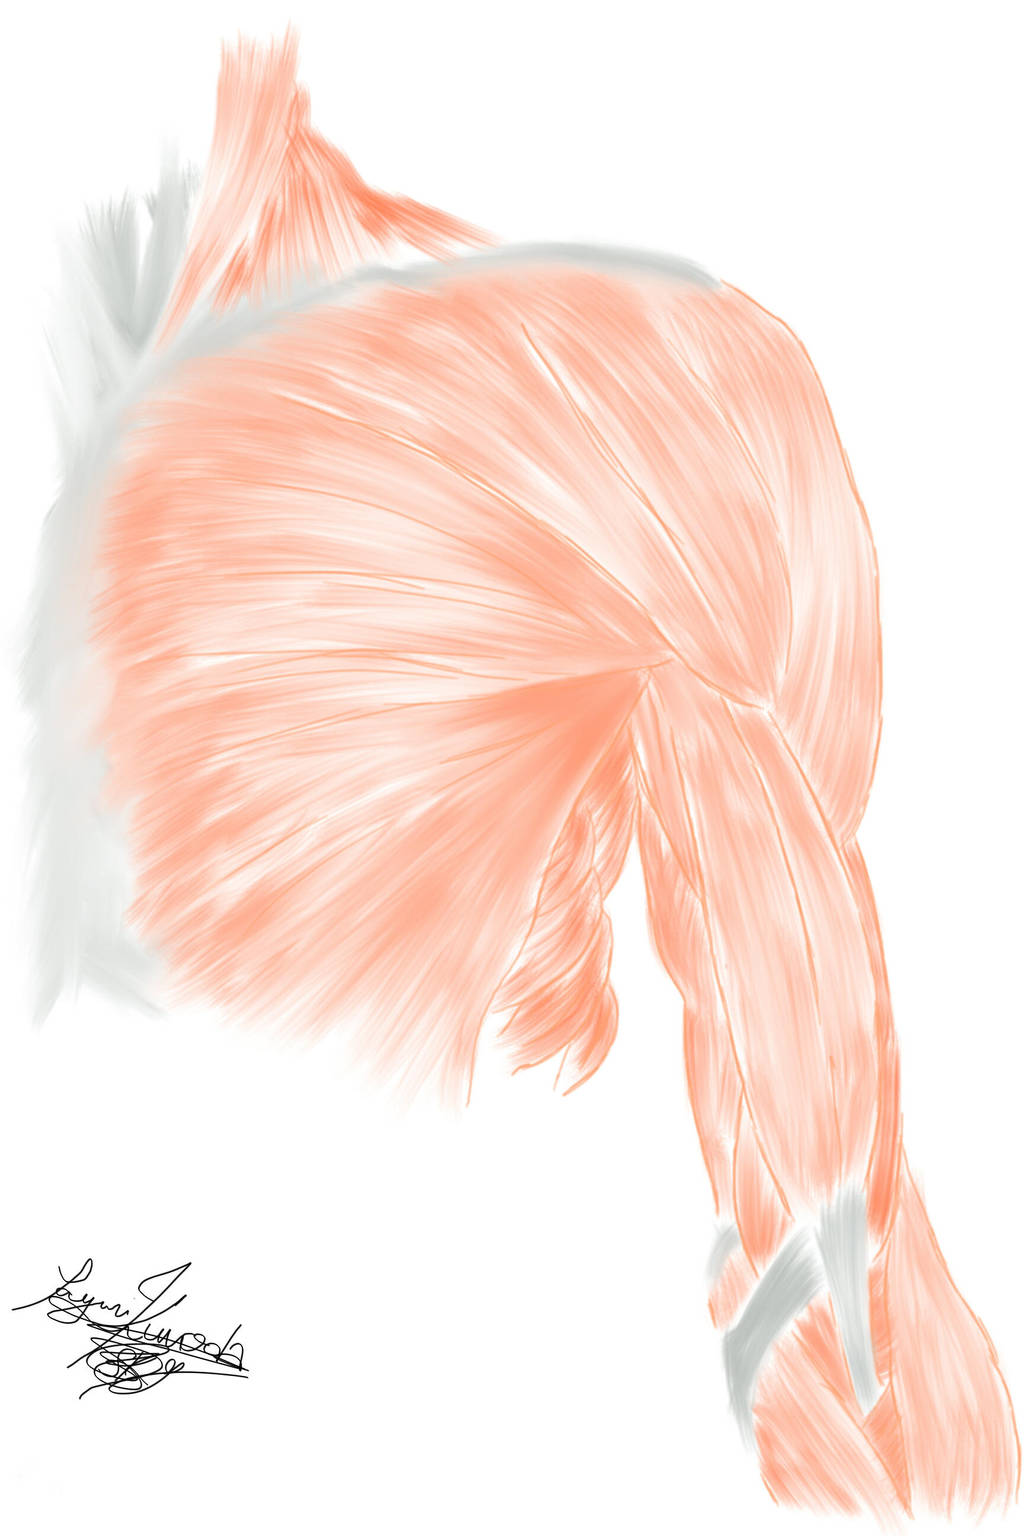 Anatomy Shoulder And Bicep Muscles By Sayurikuroda On Deviantart